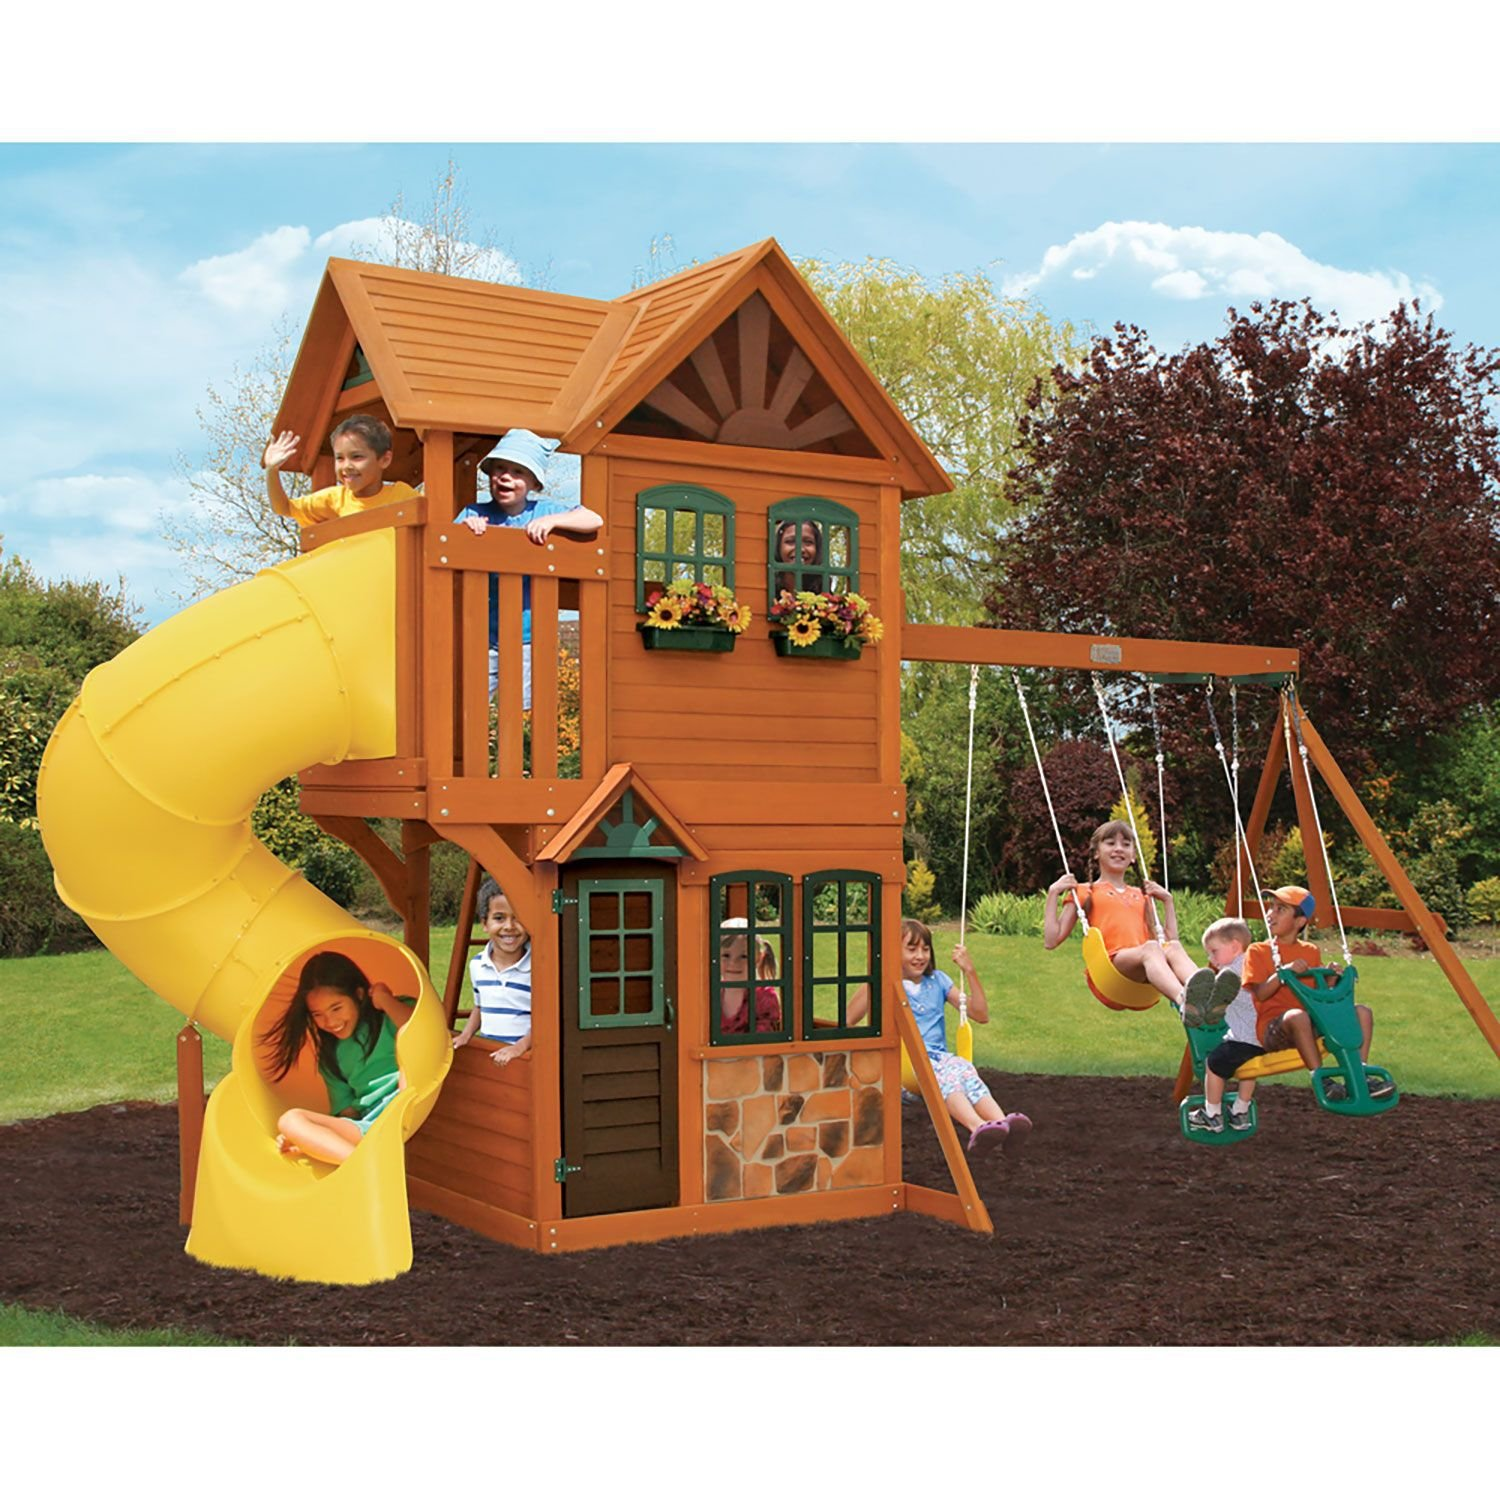 Amazon Com Cedar Summit Play Set Wooden House Deck Swings Rockwall